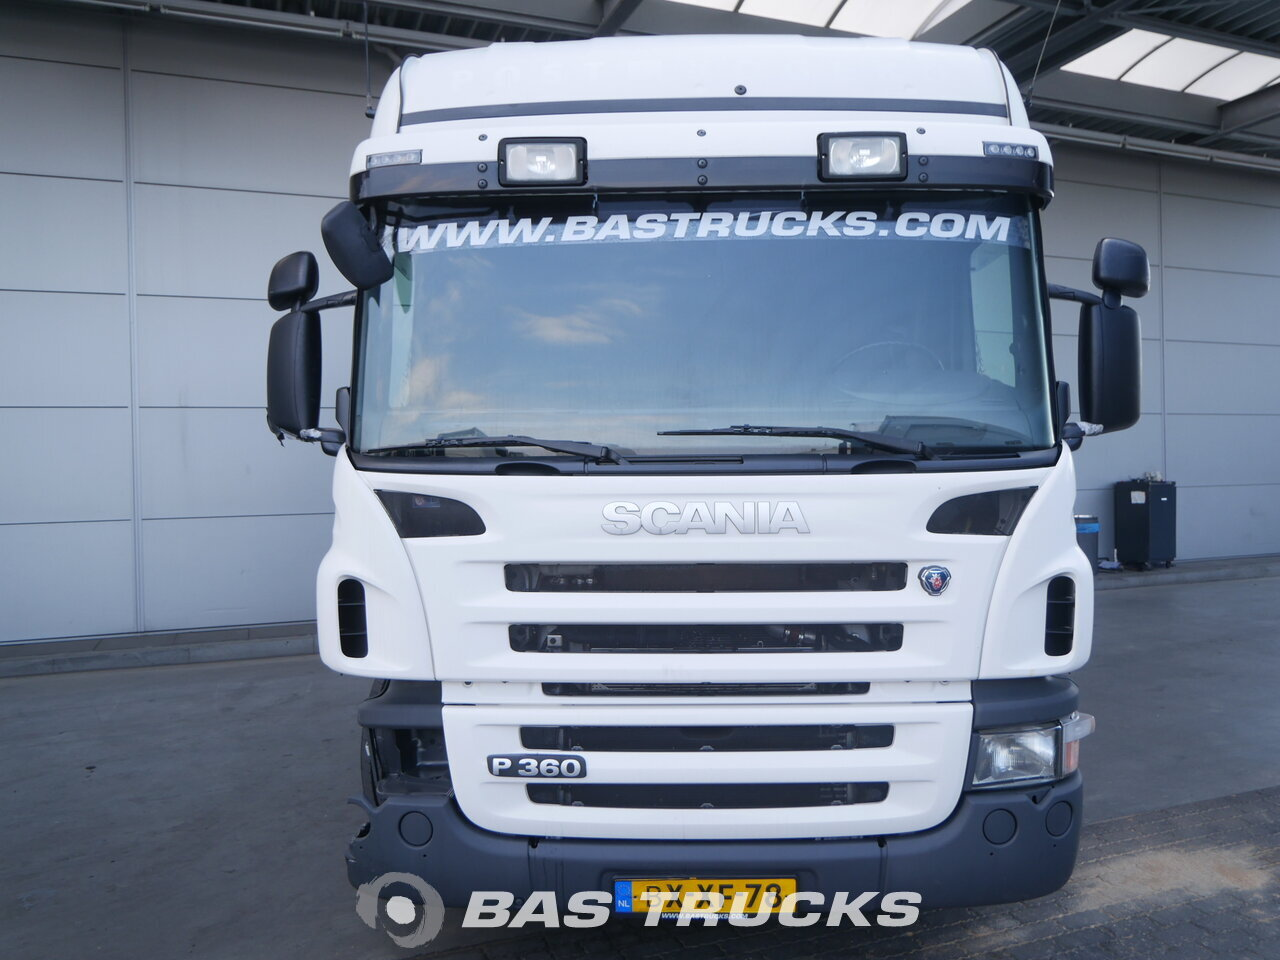 For sale at BAS Parts: Scania 360 4X2 01/2011